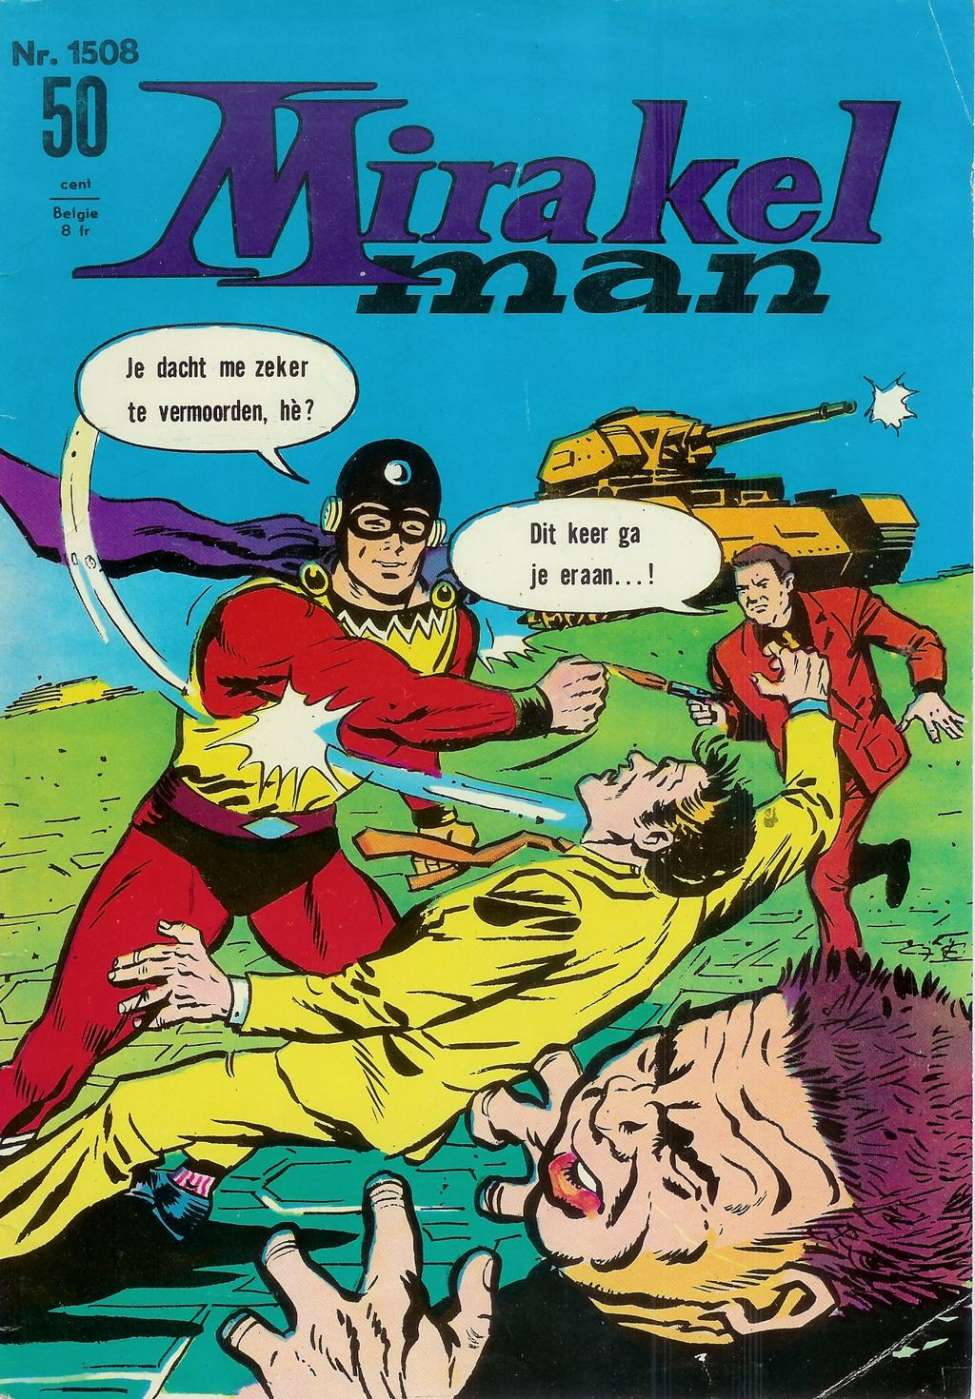 Comic Book Cover For Mirakelman #1508